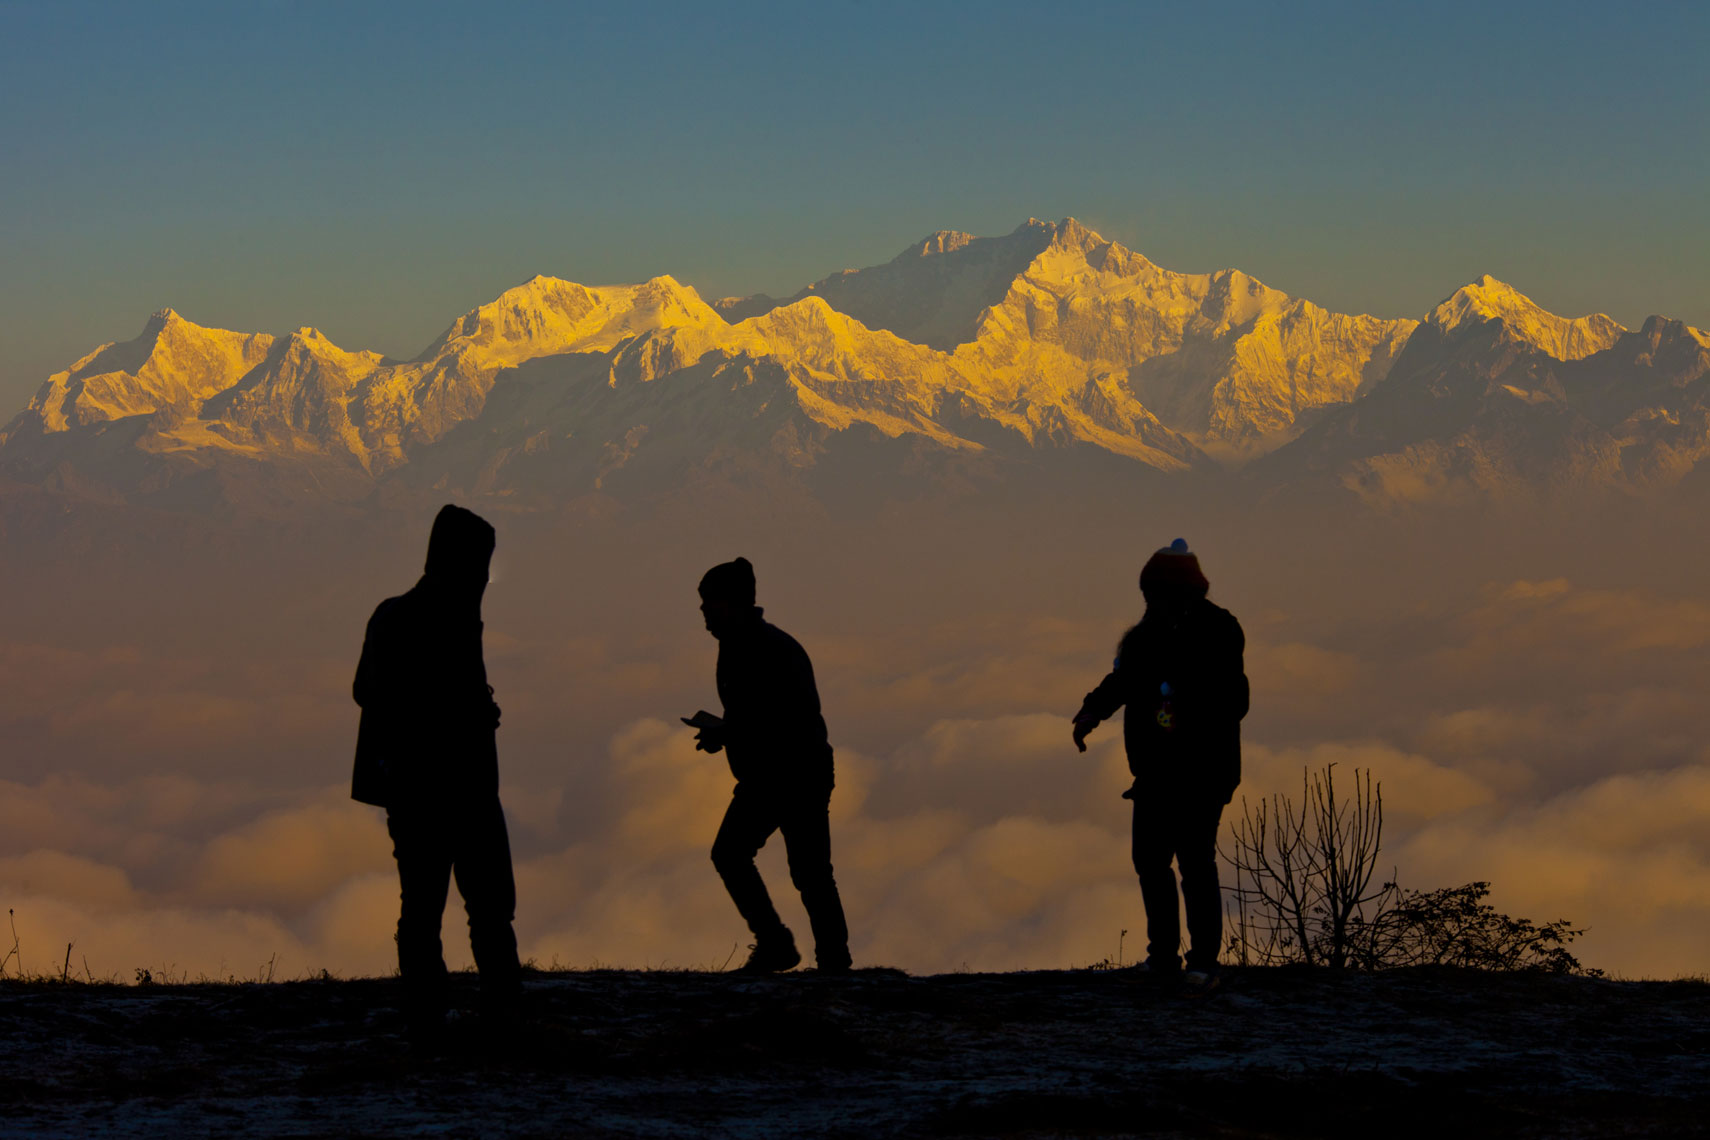 lra_20140206_silkair_calcutta_edited_300DPI_RGB-9527_Darjeeling_Sunrise-on-Tiger-Hill_View-of-Kanchenjunga